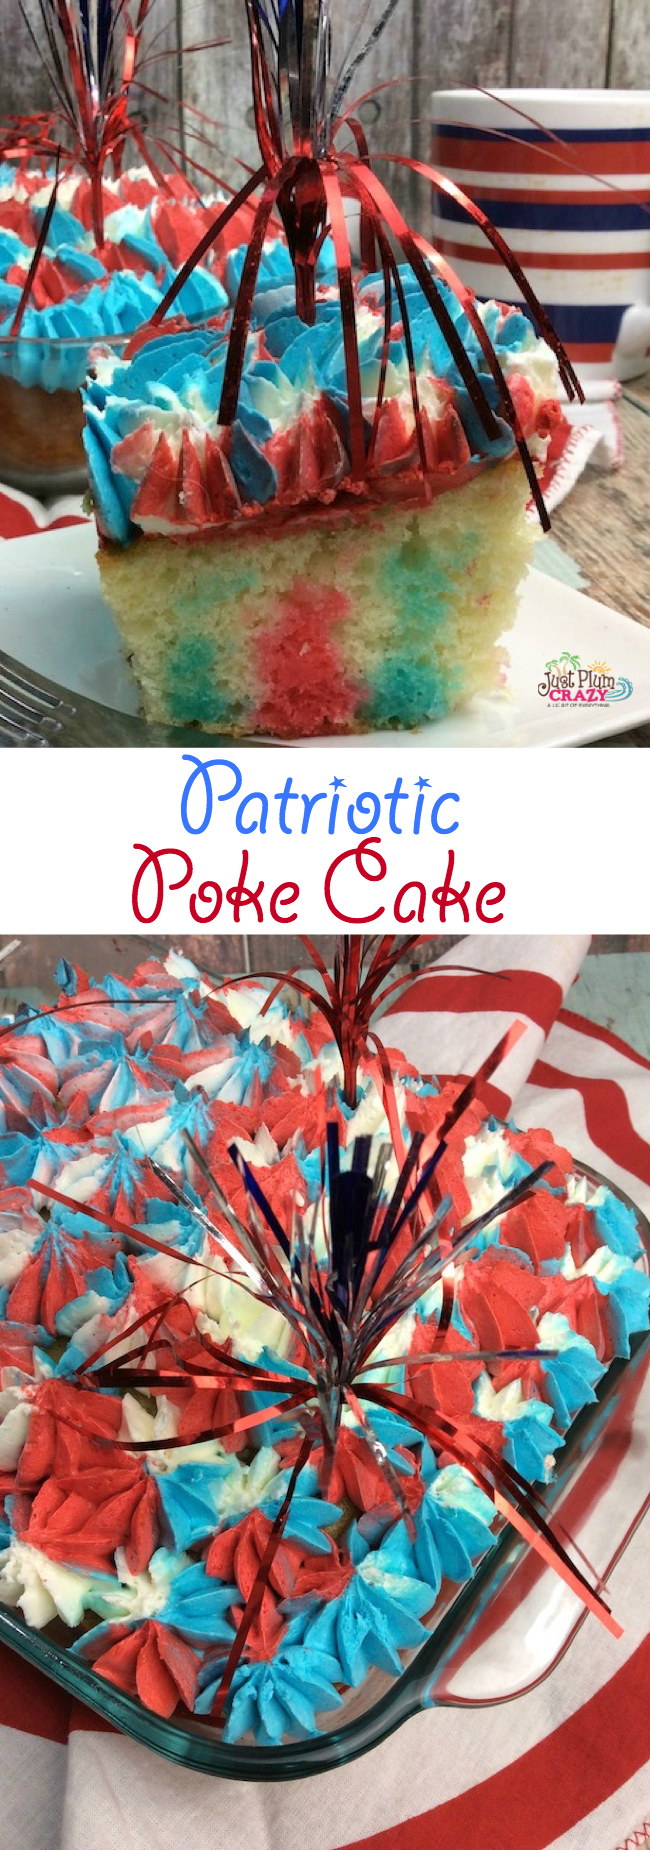 Beautiful patriotic red, white and blue poke cake filled with jello for a perfect 4th of July dessert.